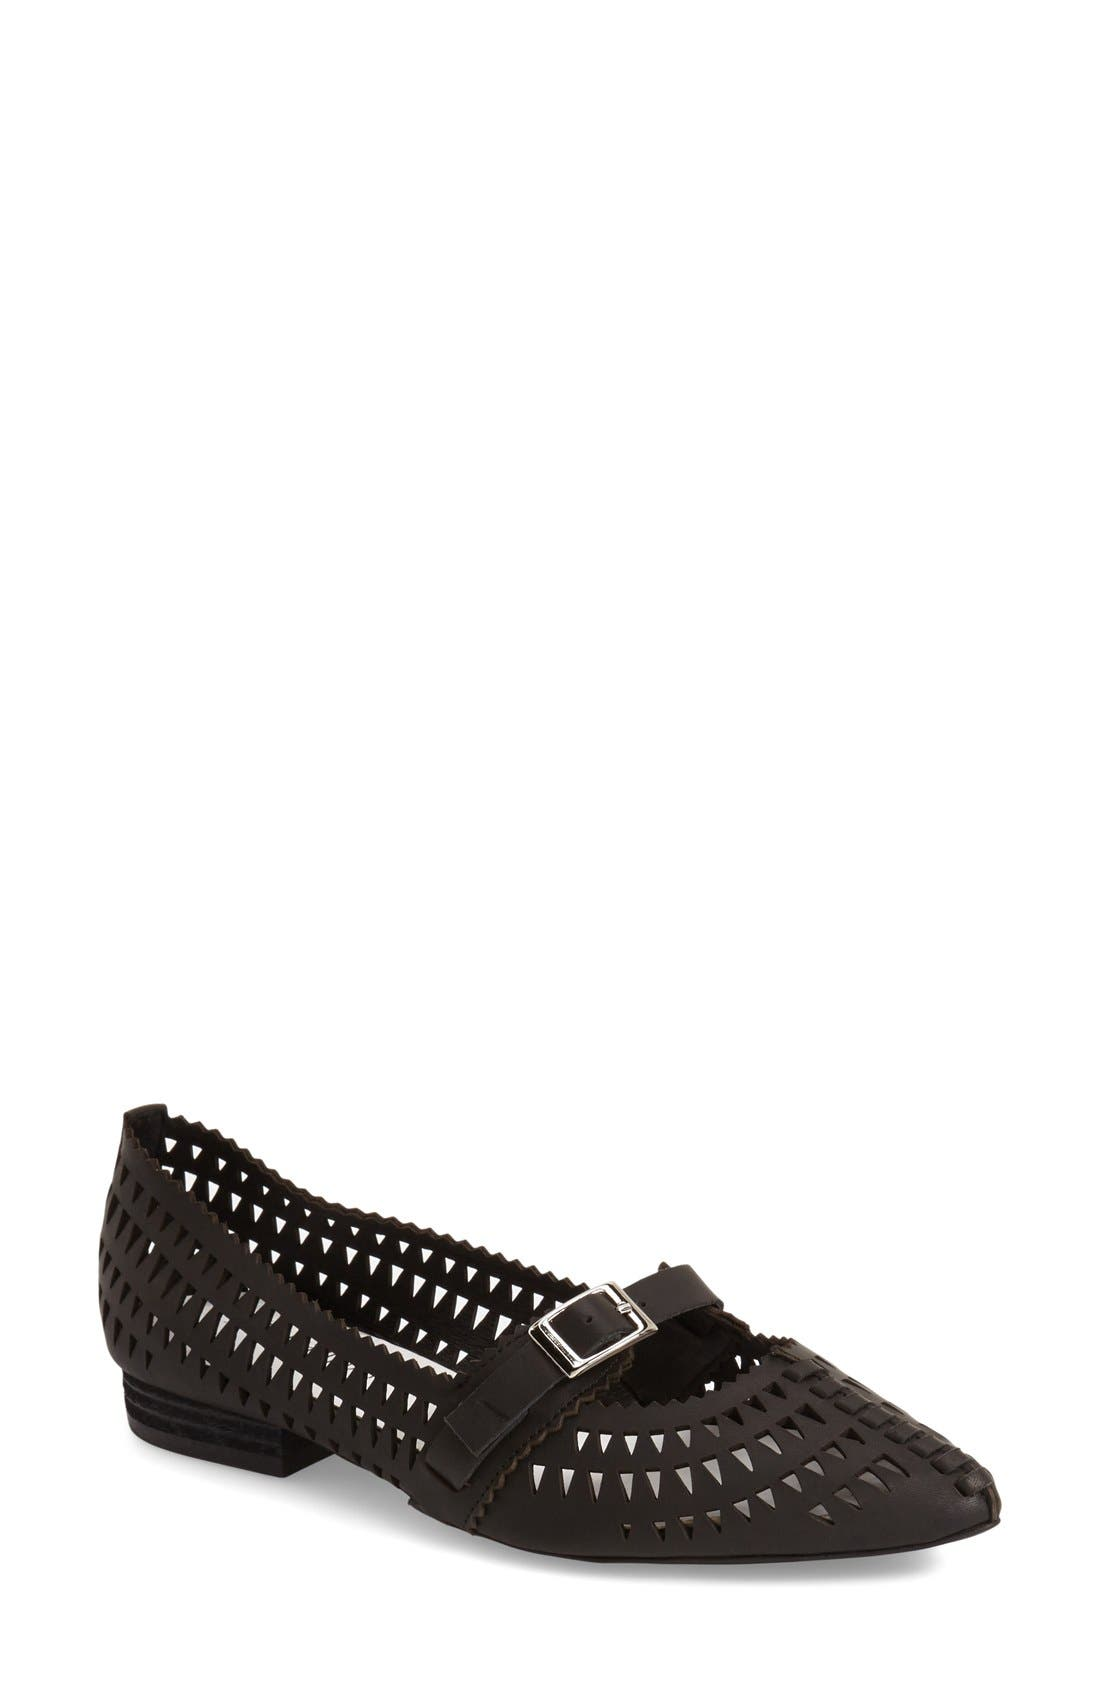 Alternate Image 1 Selected - Jeffrey Campbell 'Padme' Mary Jane Flat (Women)